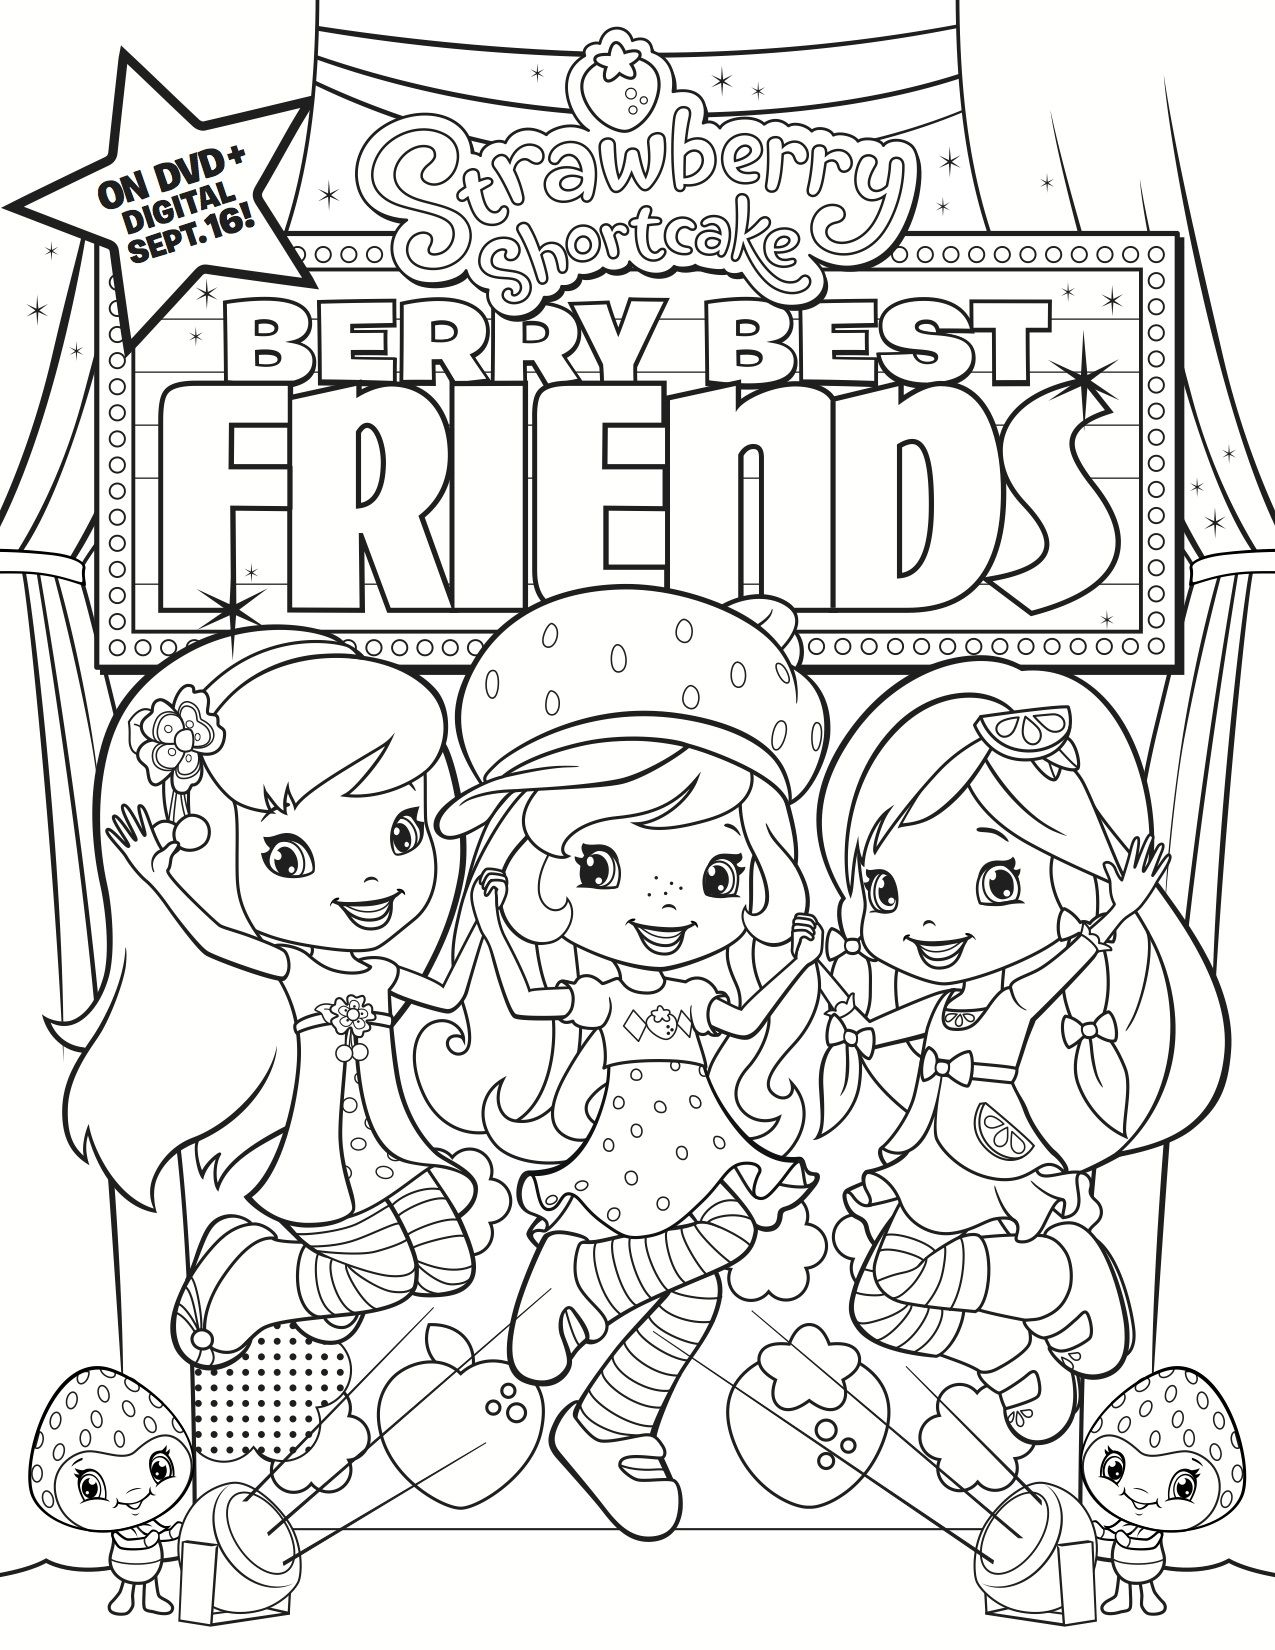 Fox Ss Berry Best Friends Coloring Sheet Giveaway Contests